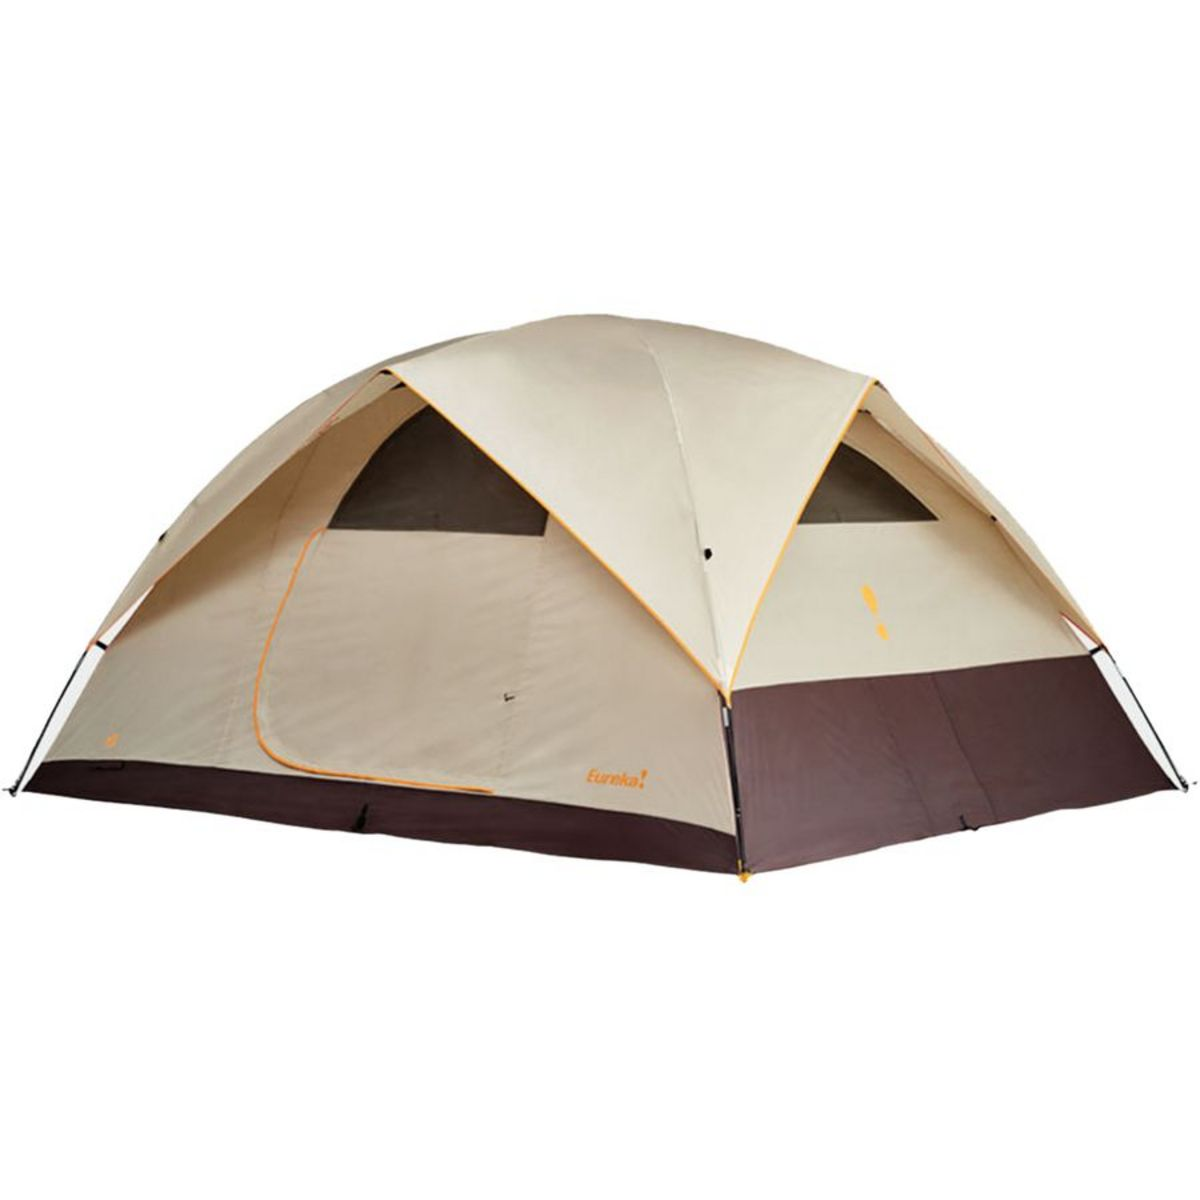 Eureka Sunrise EX 6 Person Tent